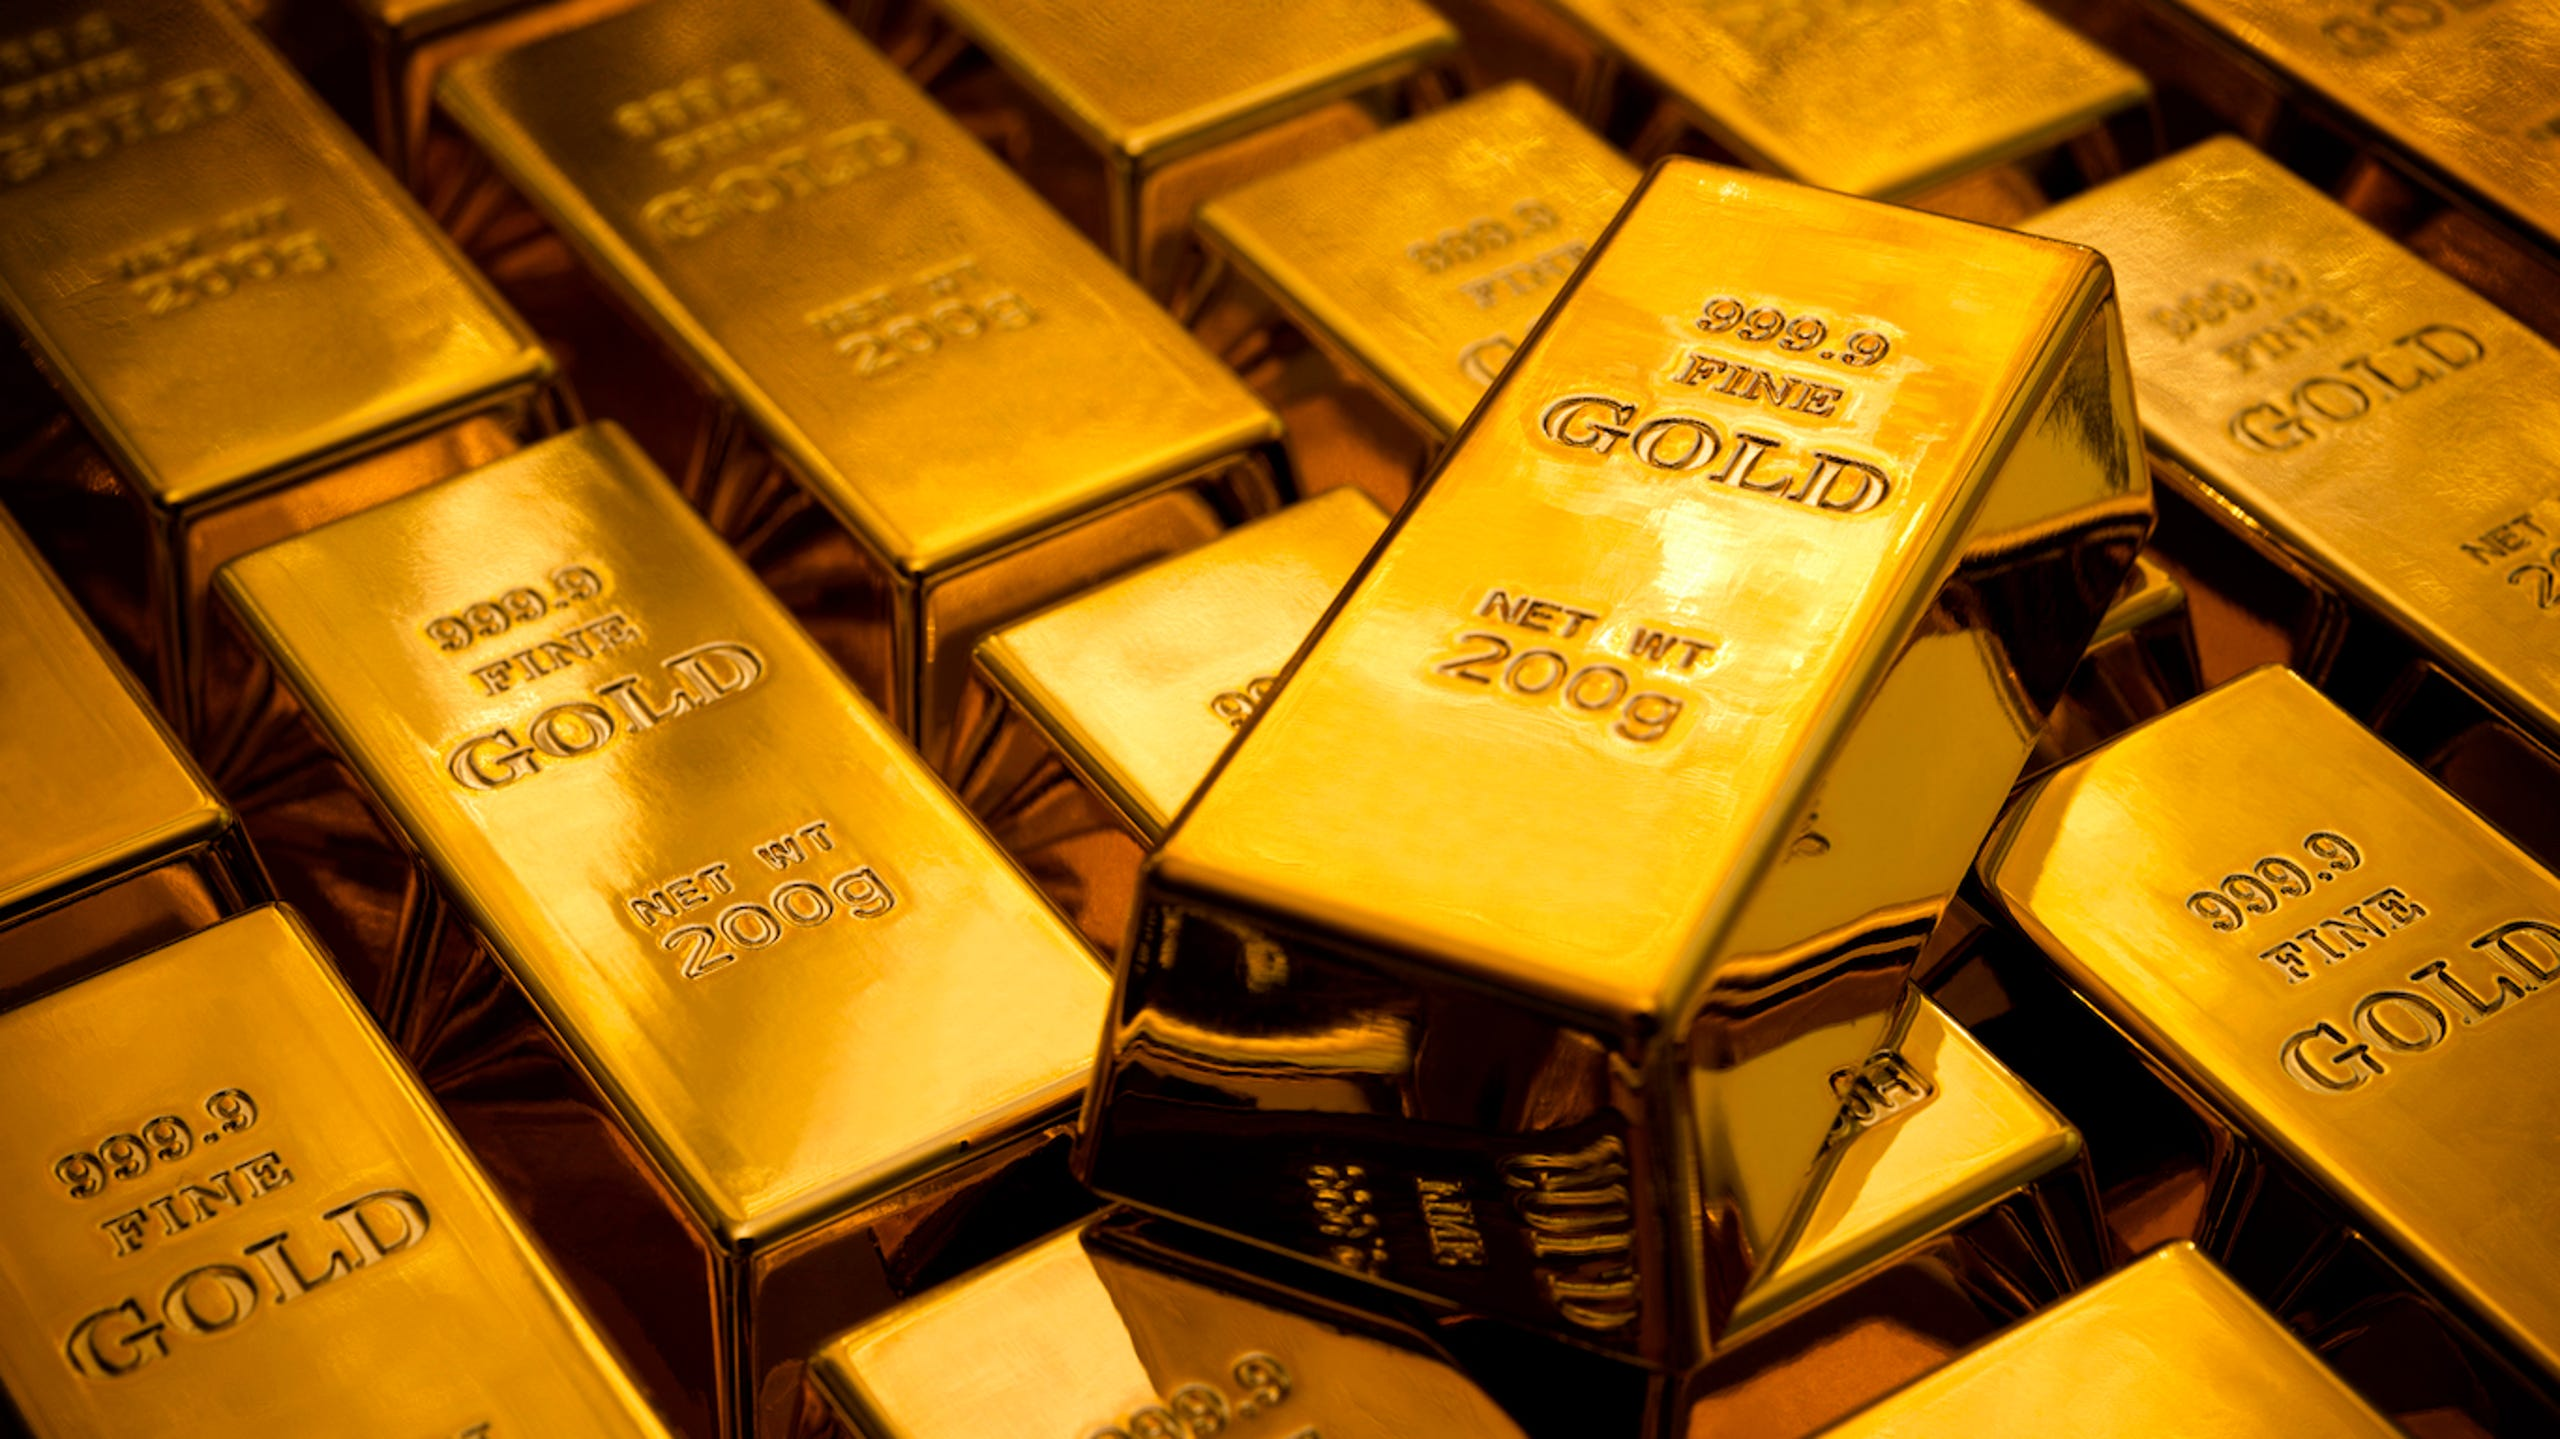 The price of gold and silver has declined